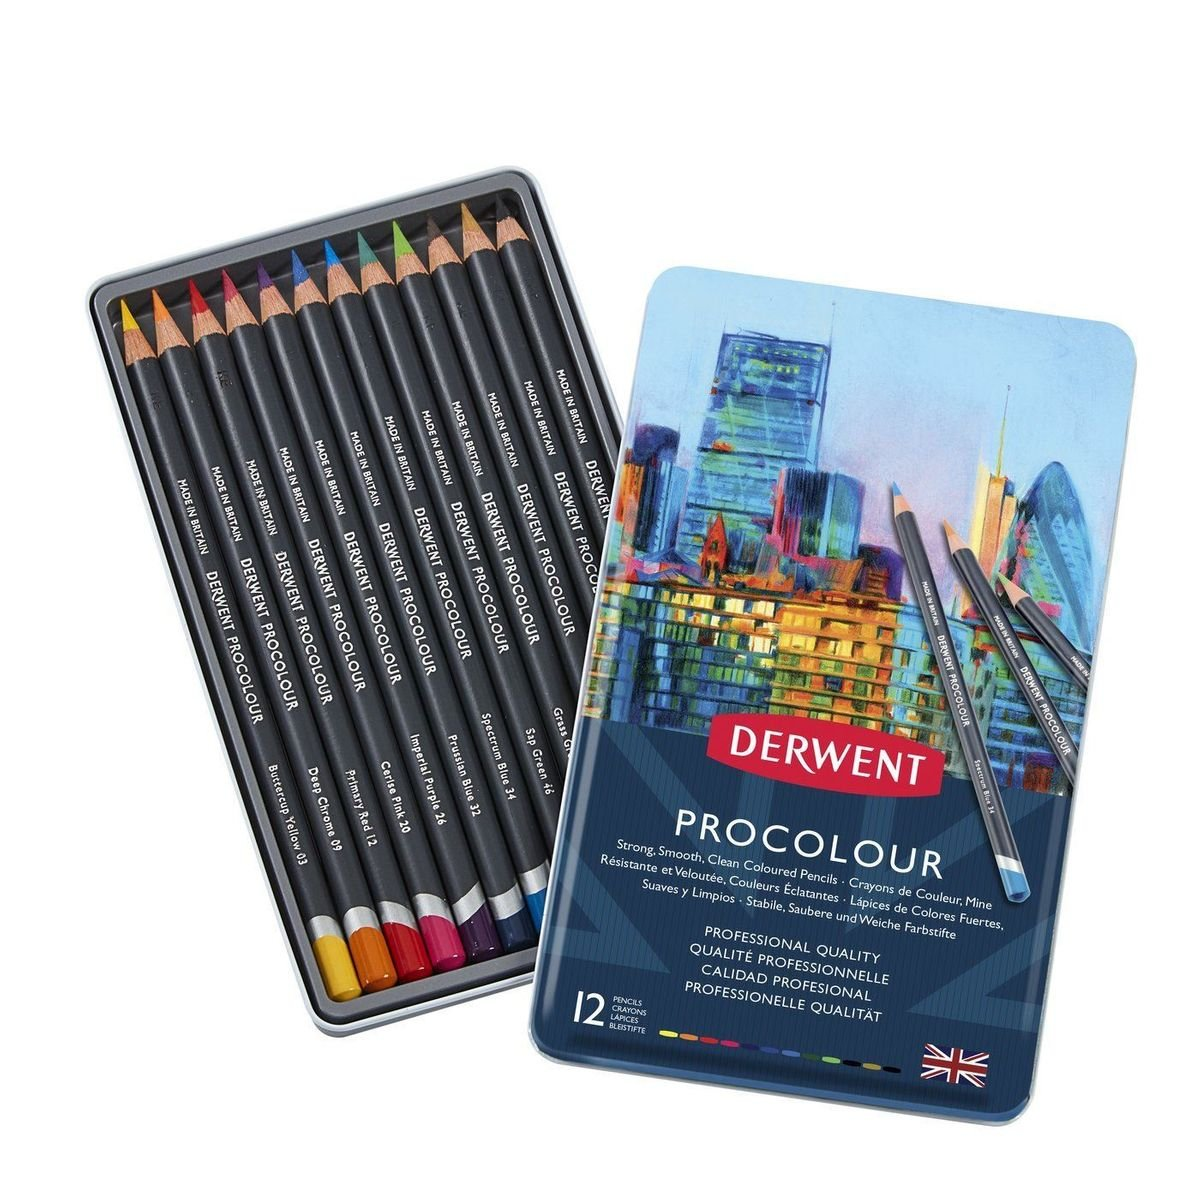 KIT DERWENT PROCOLOUR 12 CORES